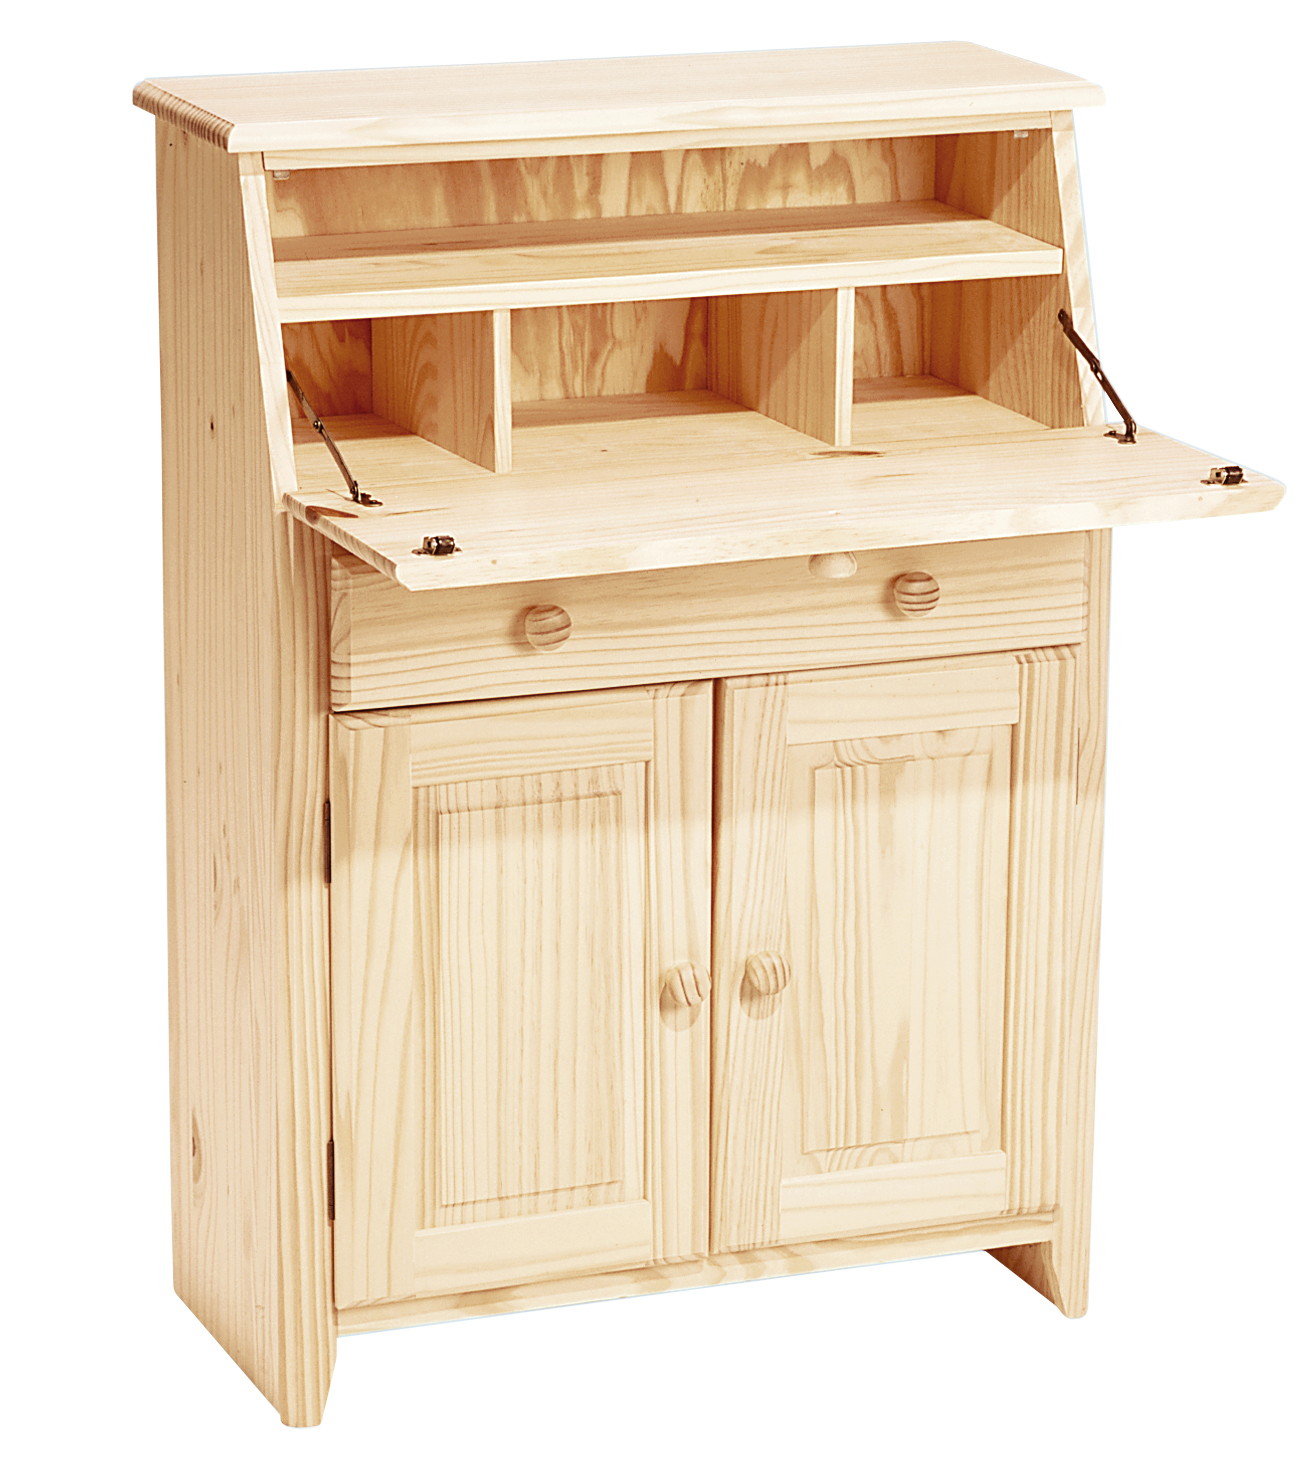 Best Selection Furniture of Unfinished Furniture Charlotte Nc: Unfinished Pine Furniture Wholesale | Unfinished Furniture Cary Nc | Unfinished Furniture Charlotte Nc